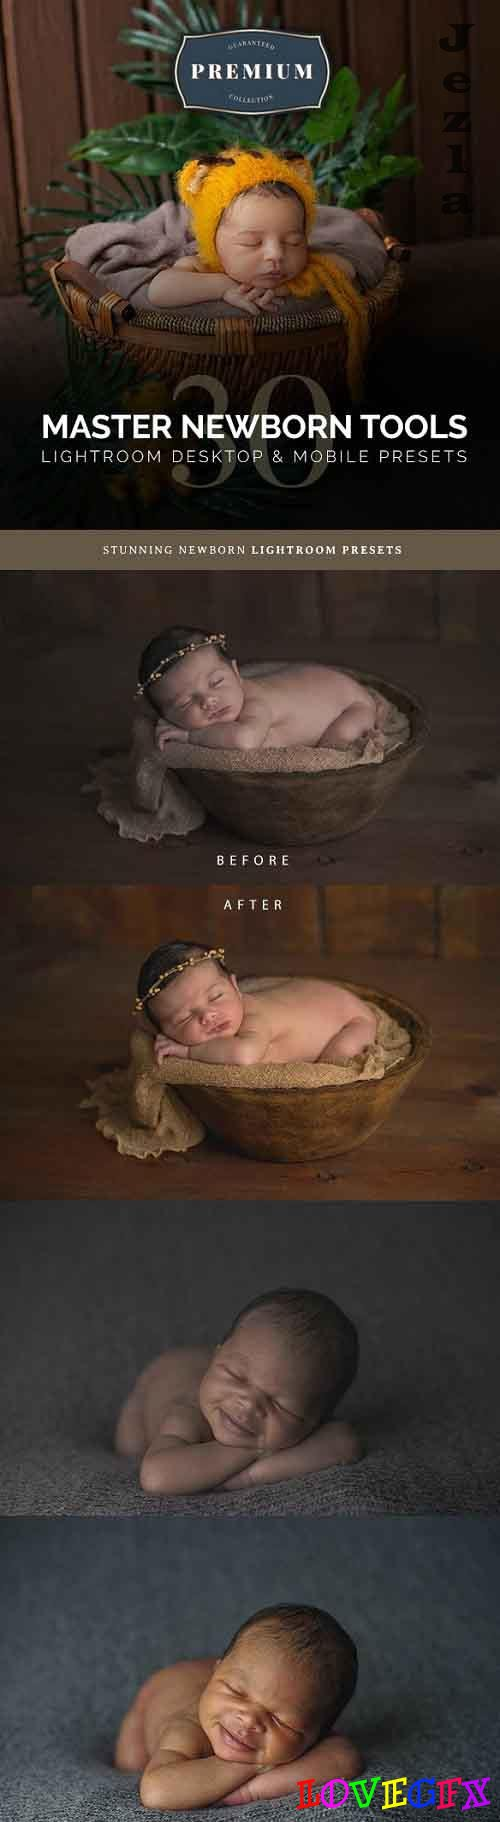 Master Newborn Lightroom Desktop & Mobile Presets 27665516